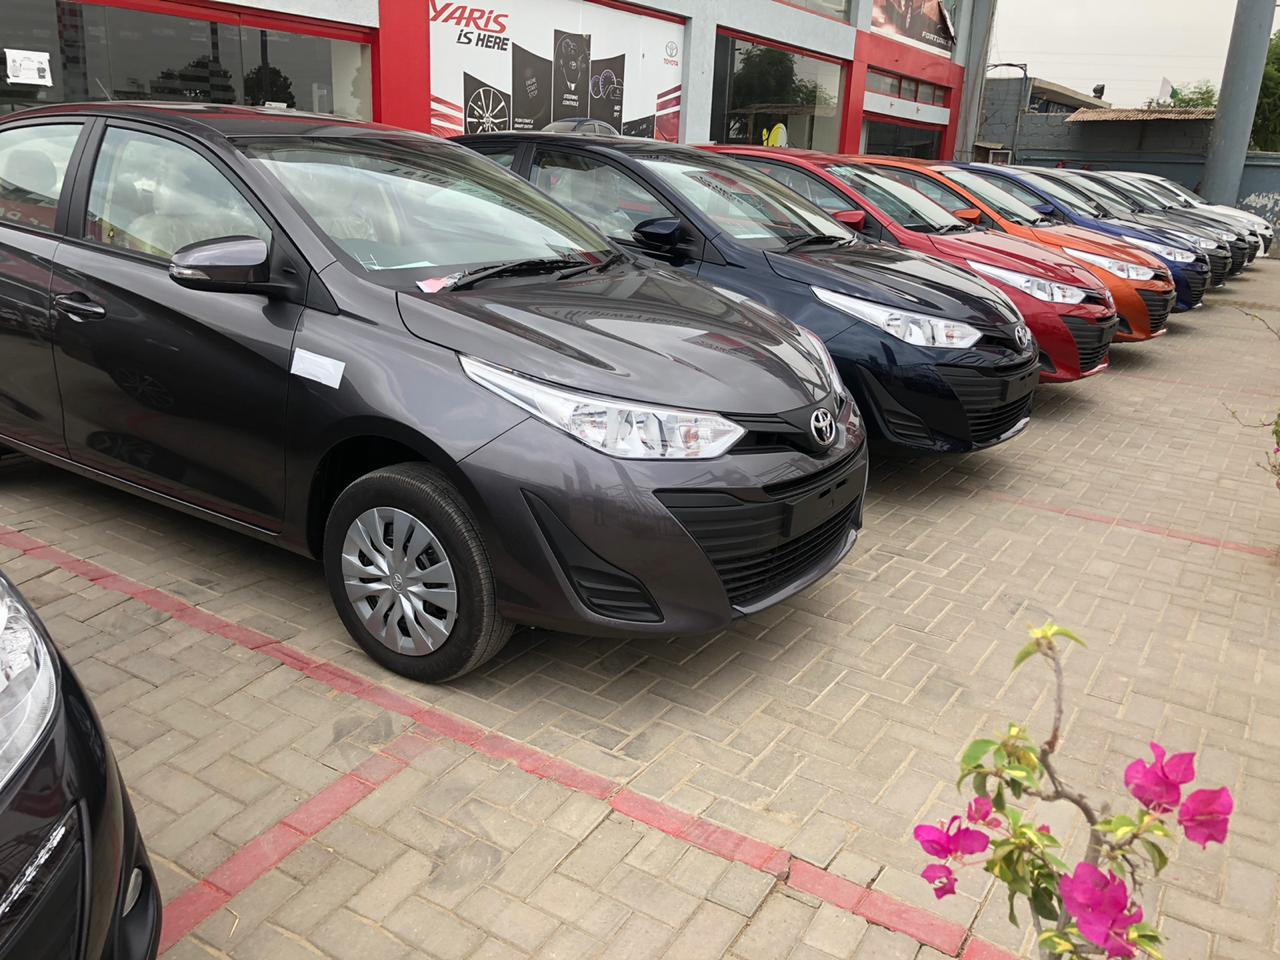 Toyota Yaris Outsells Honda City in Thailand Becoming the Bestselling Sedan in May 2021 2